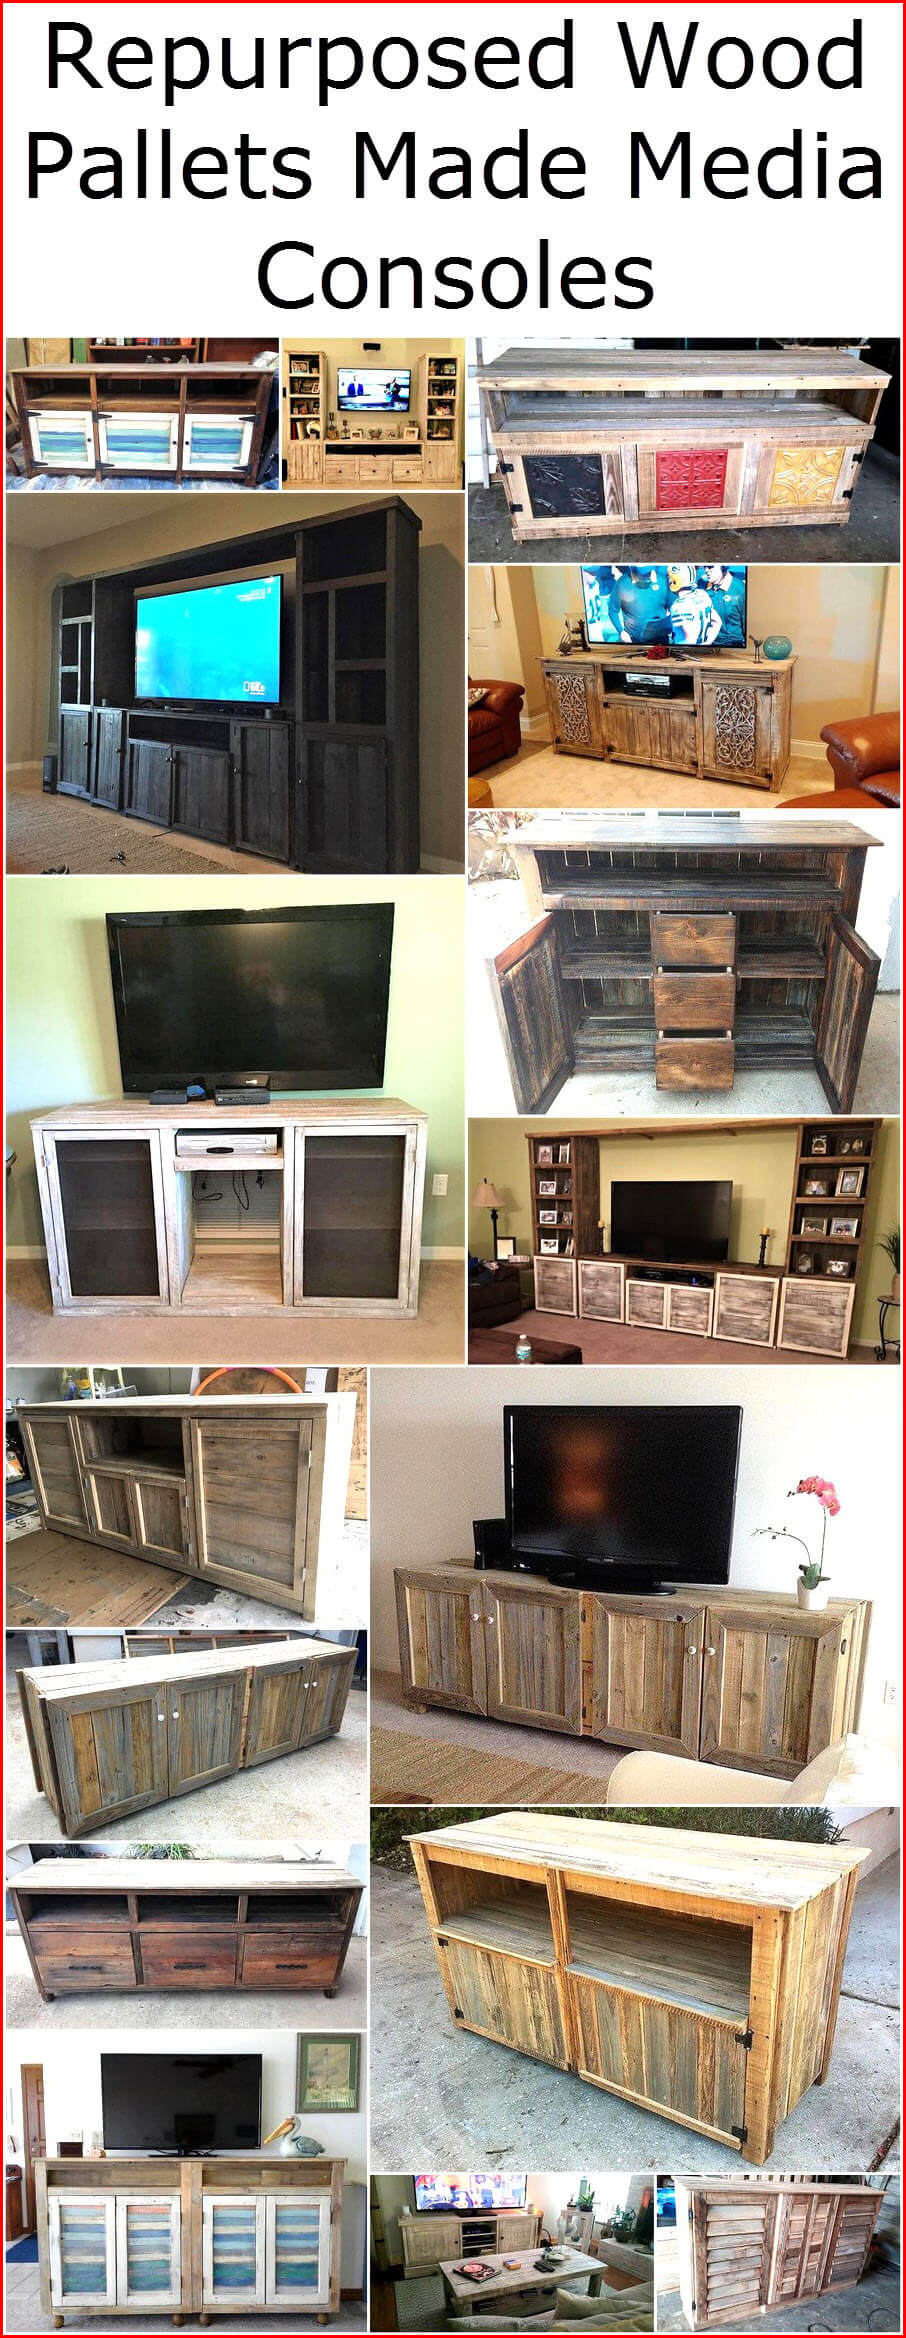 Repurposed Wood Pallets Made Media Consoles